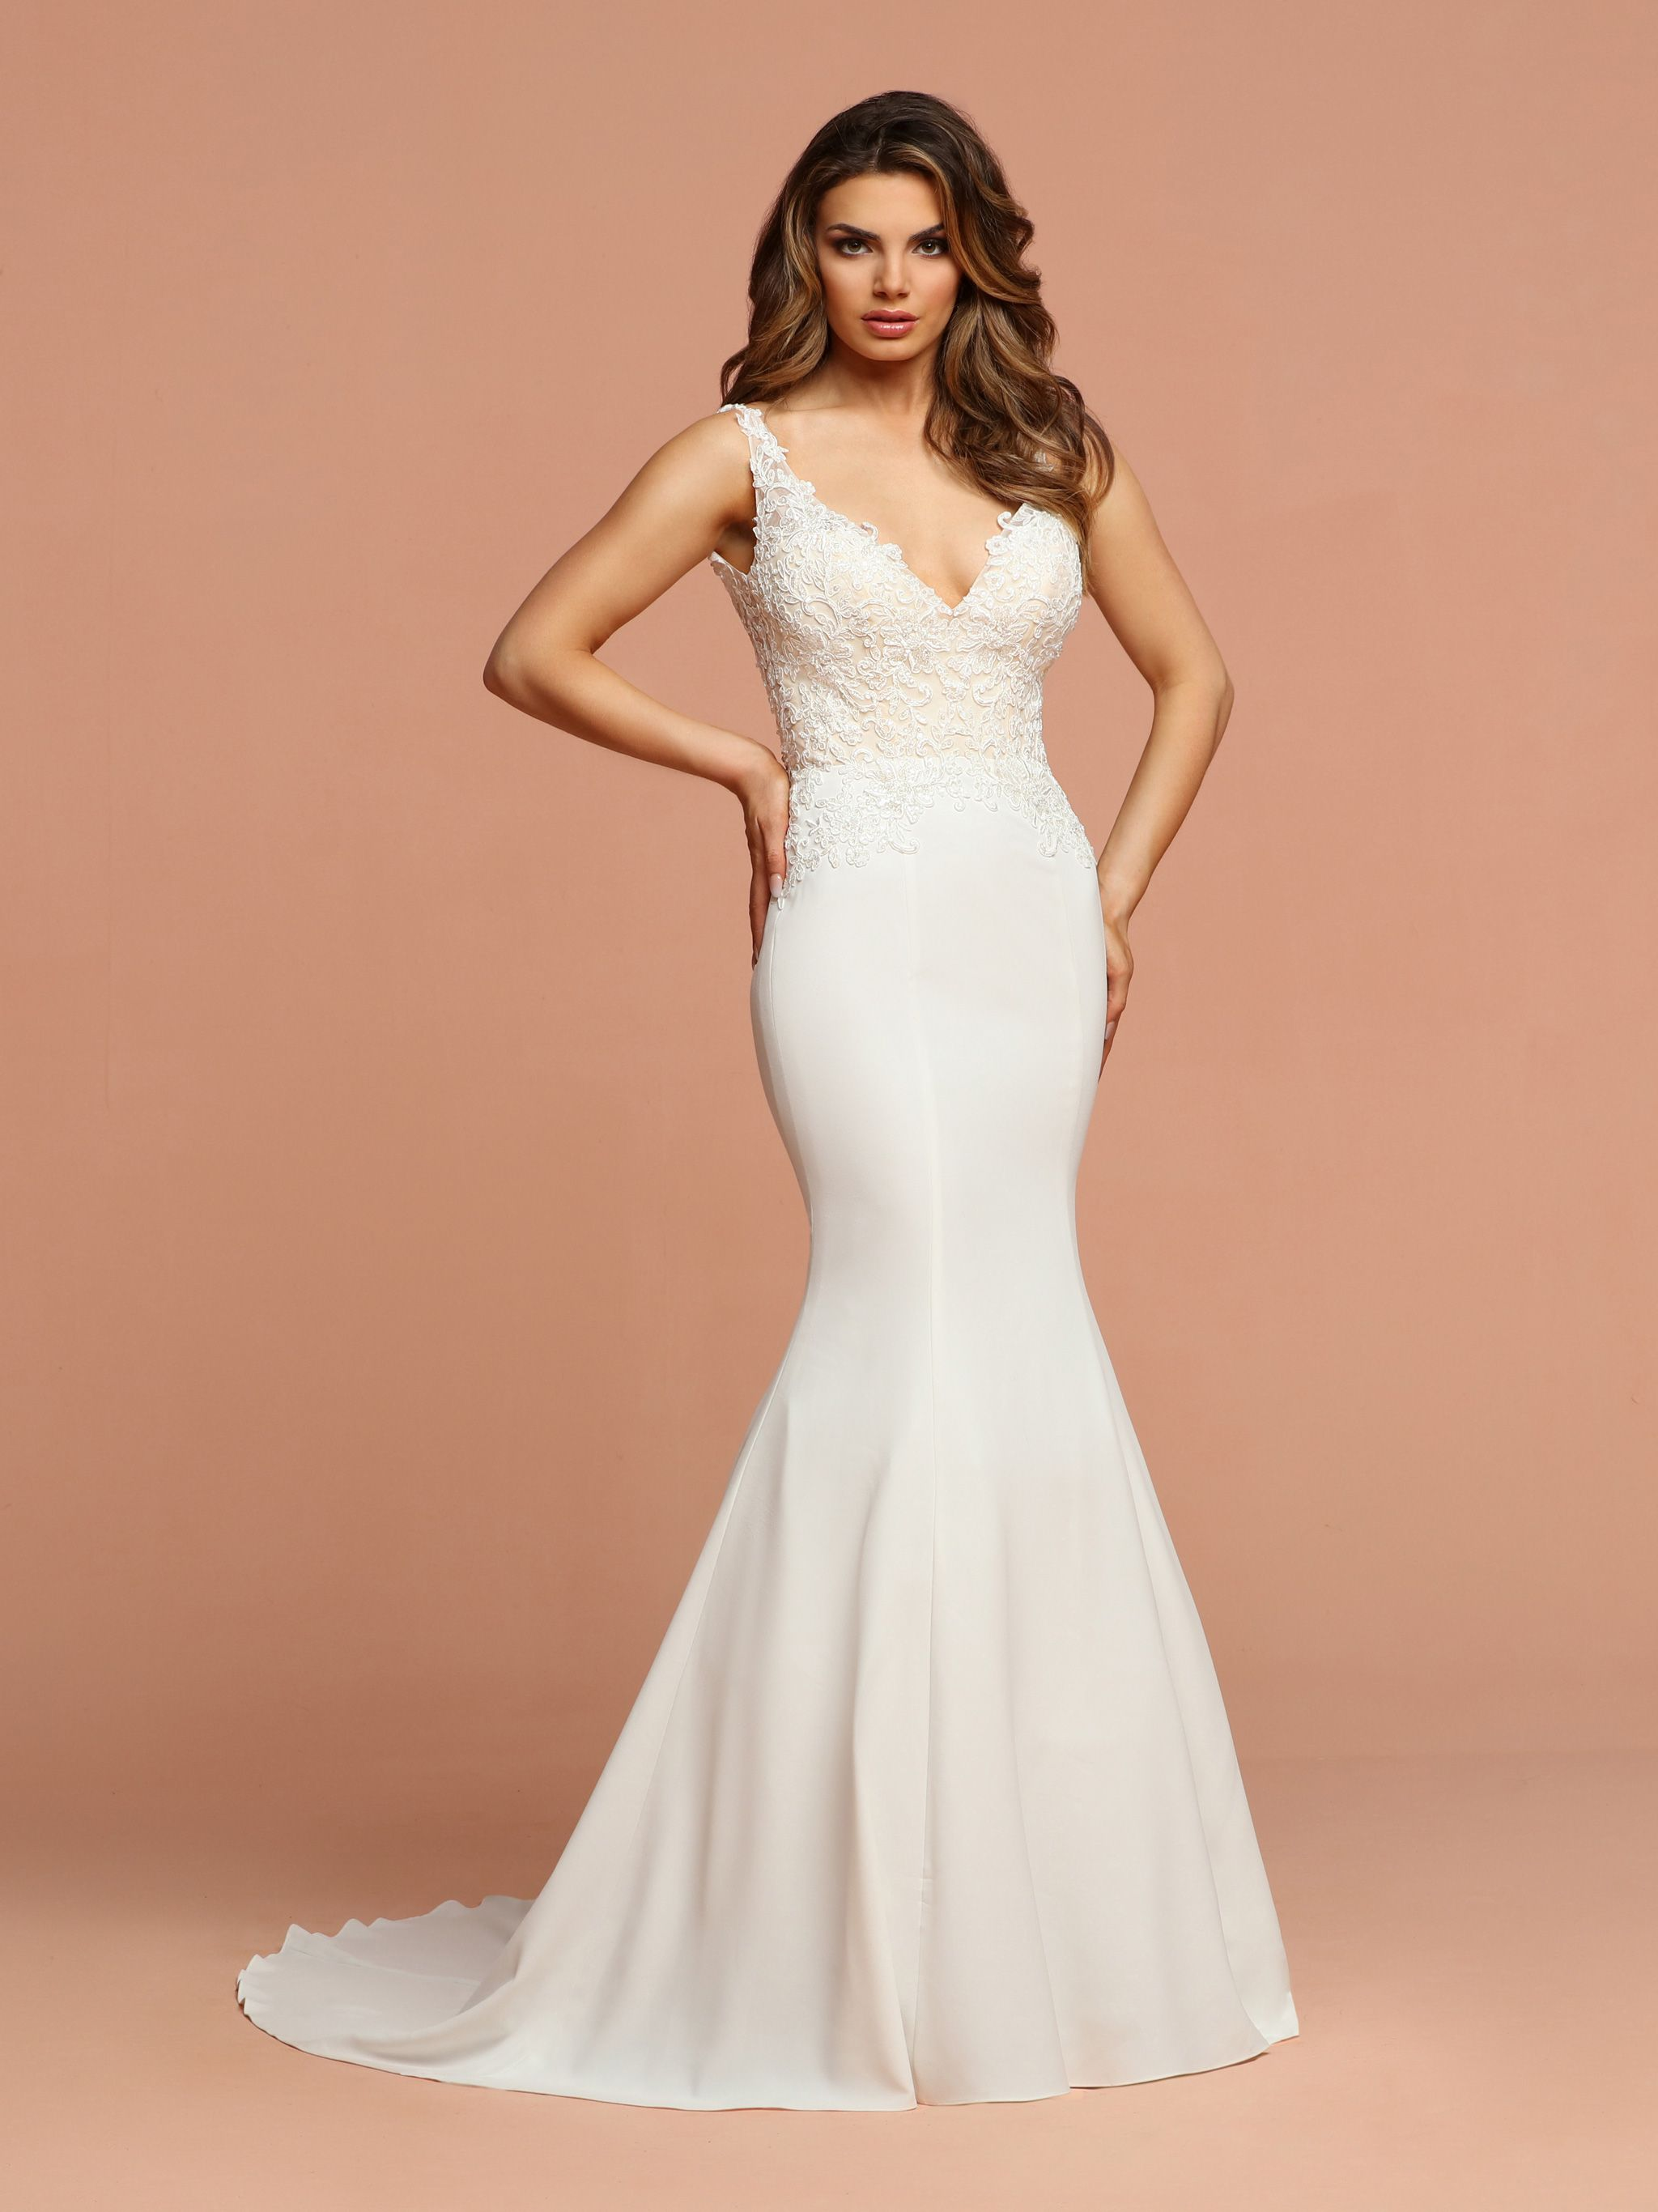 Crepe,Lace & Tulle Fit & Flare Trumpet Wedding Dress with